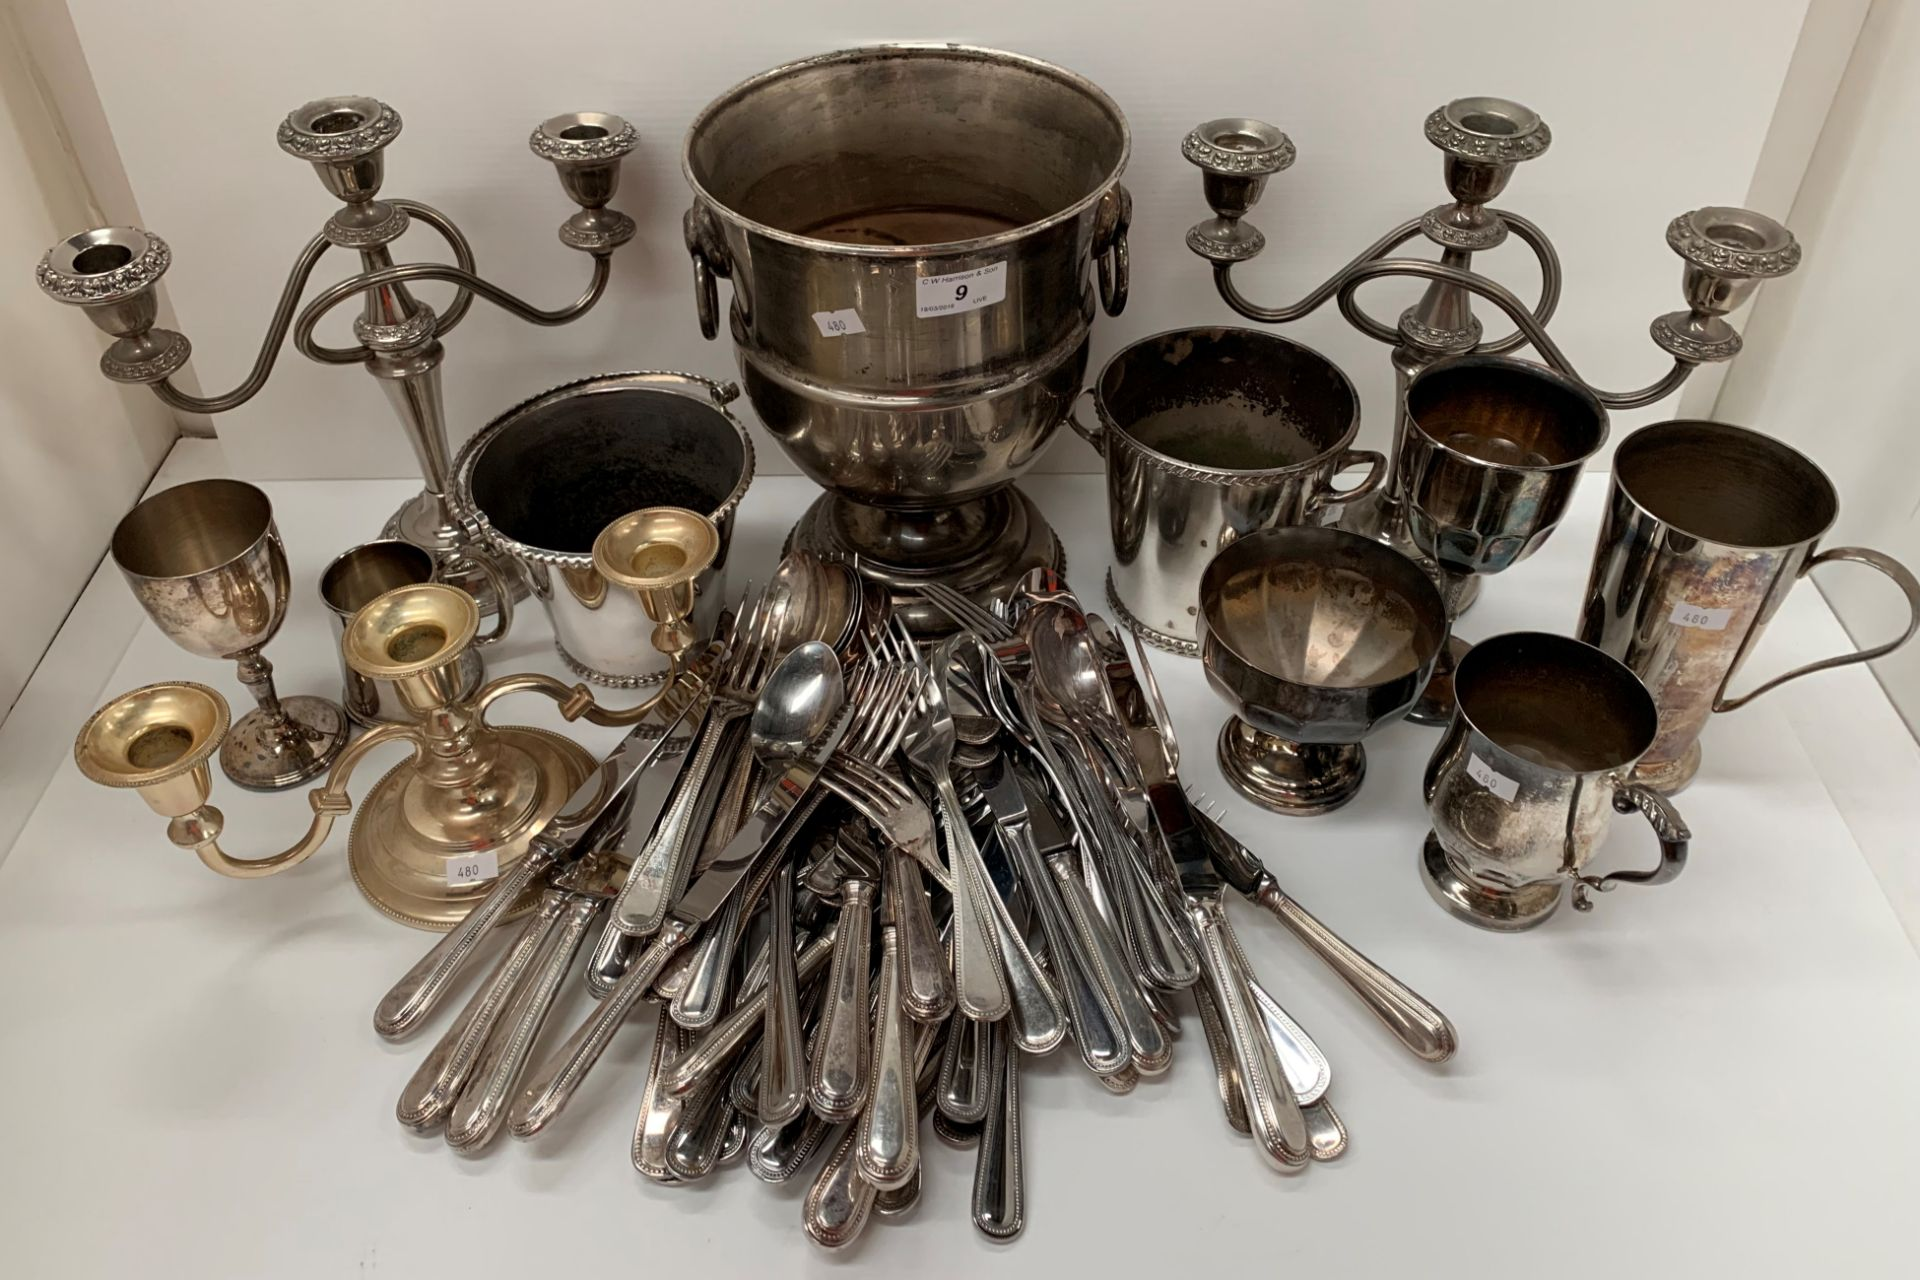 Lot 9 - A plated two handled champagne bucket, two plated candelabras, plated table cutlery, mug, etc.